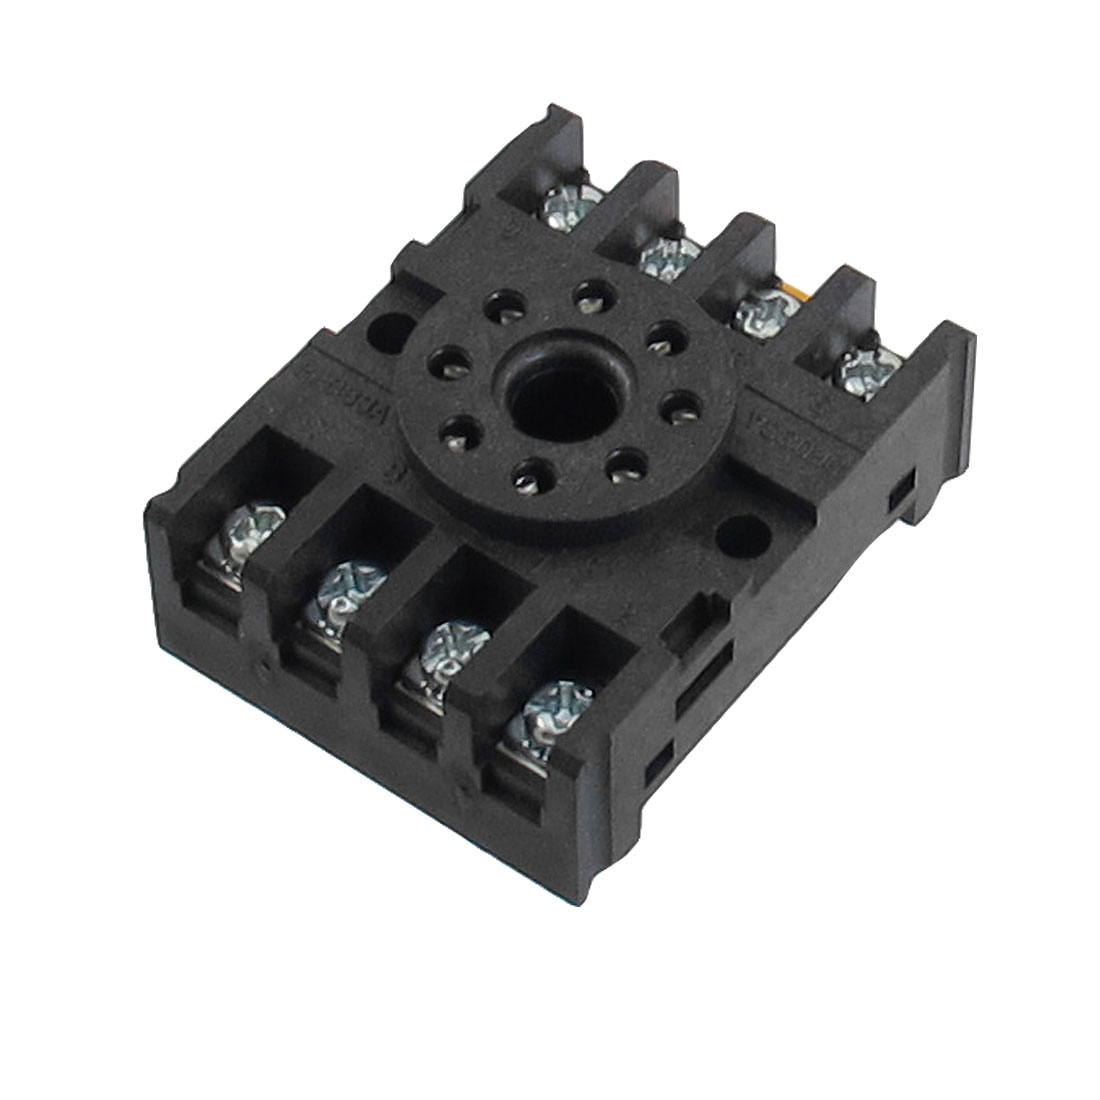 PF-083A 10A 250VAC 8 Round Pin Rail Mount Power Relay Socket Base for MK2P